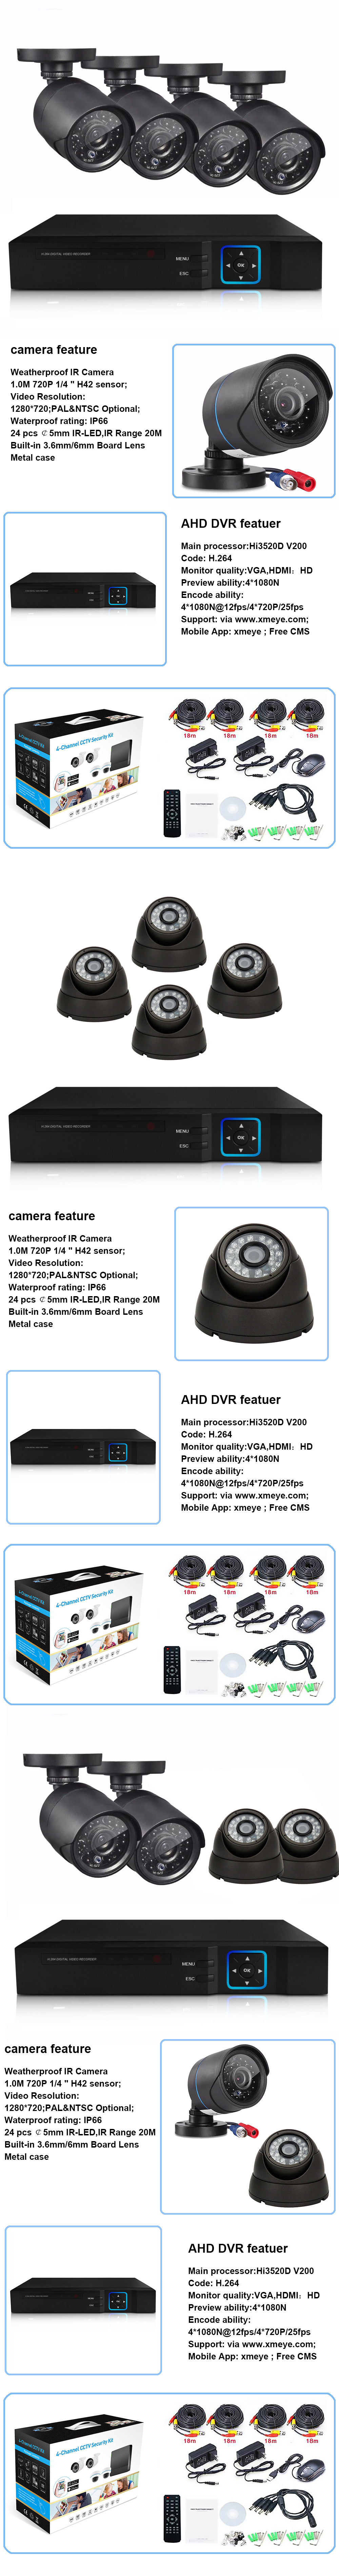 720P 4ch AHD bullet/dome HD Outdoor/indoor Home Security Camera System h264/h265 Monitoring DVR kit